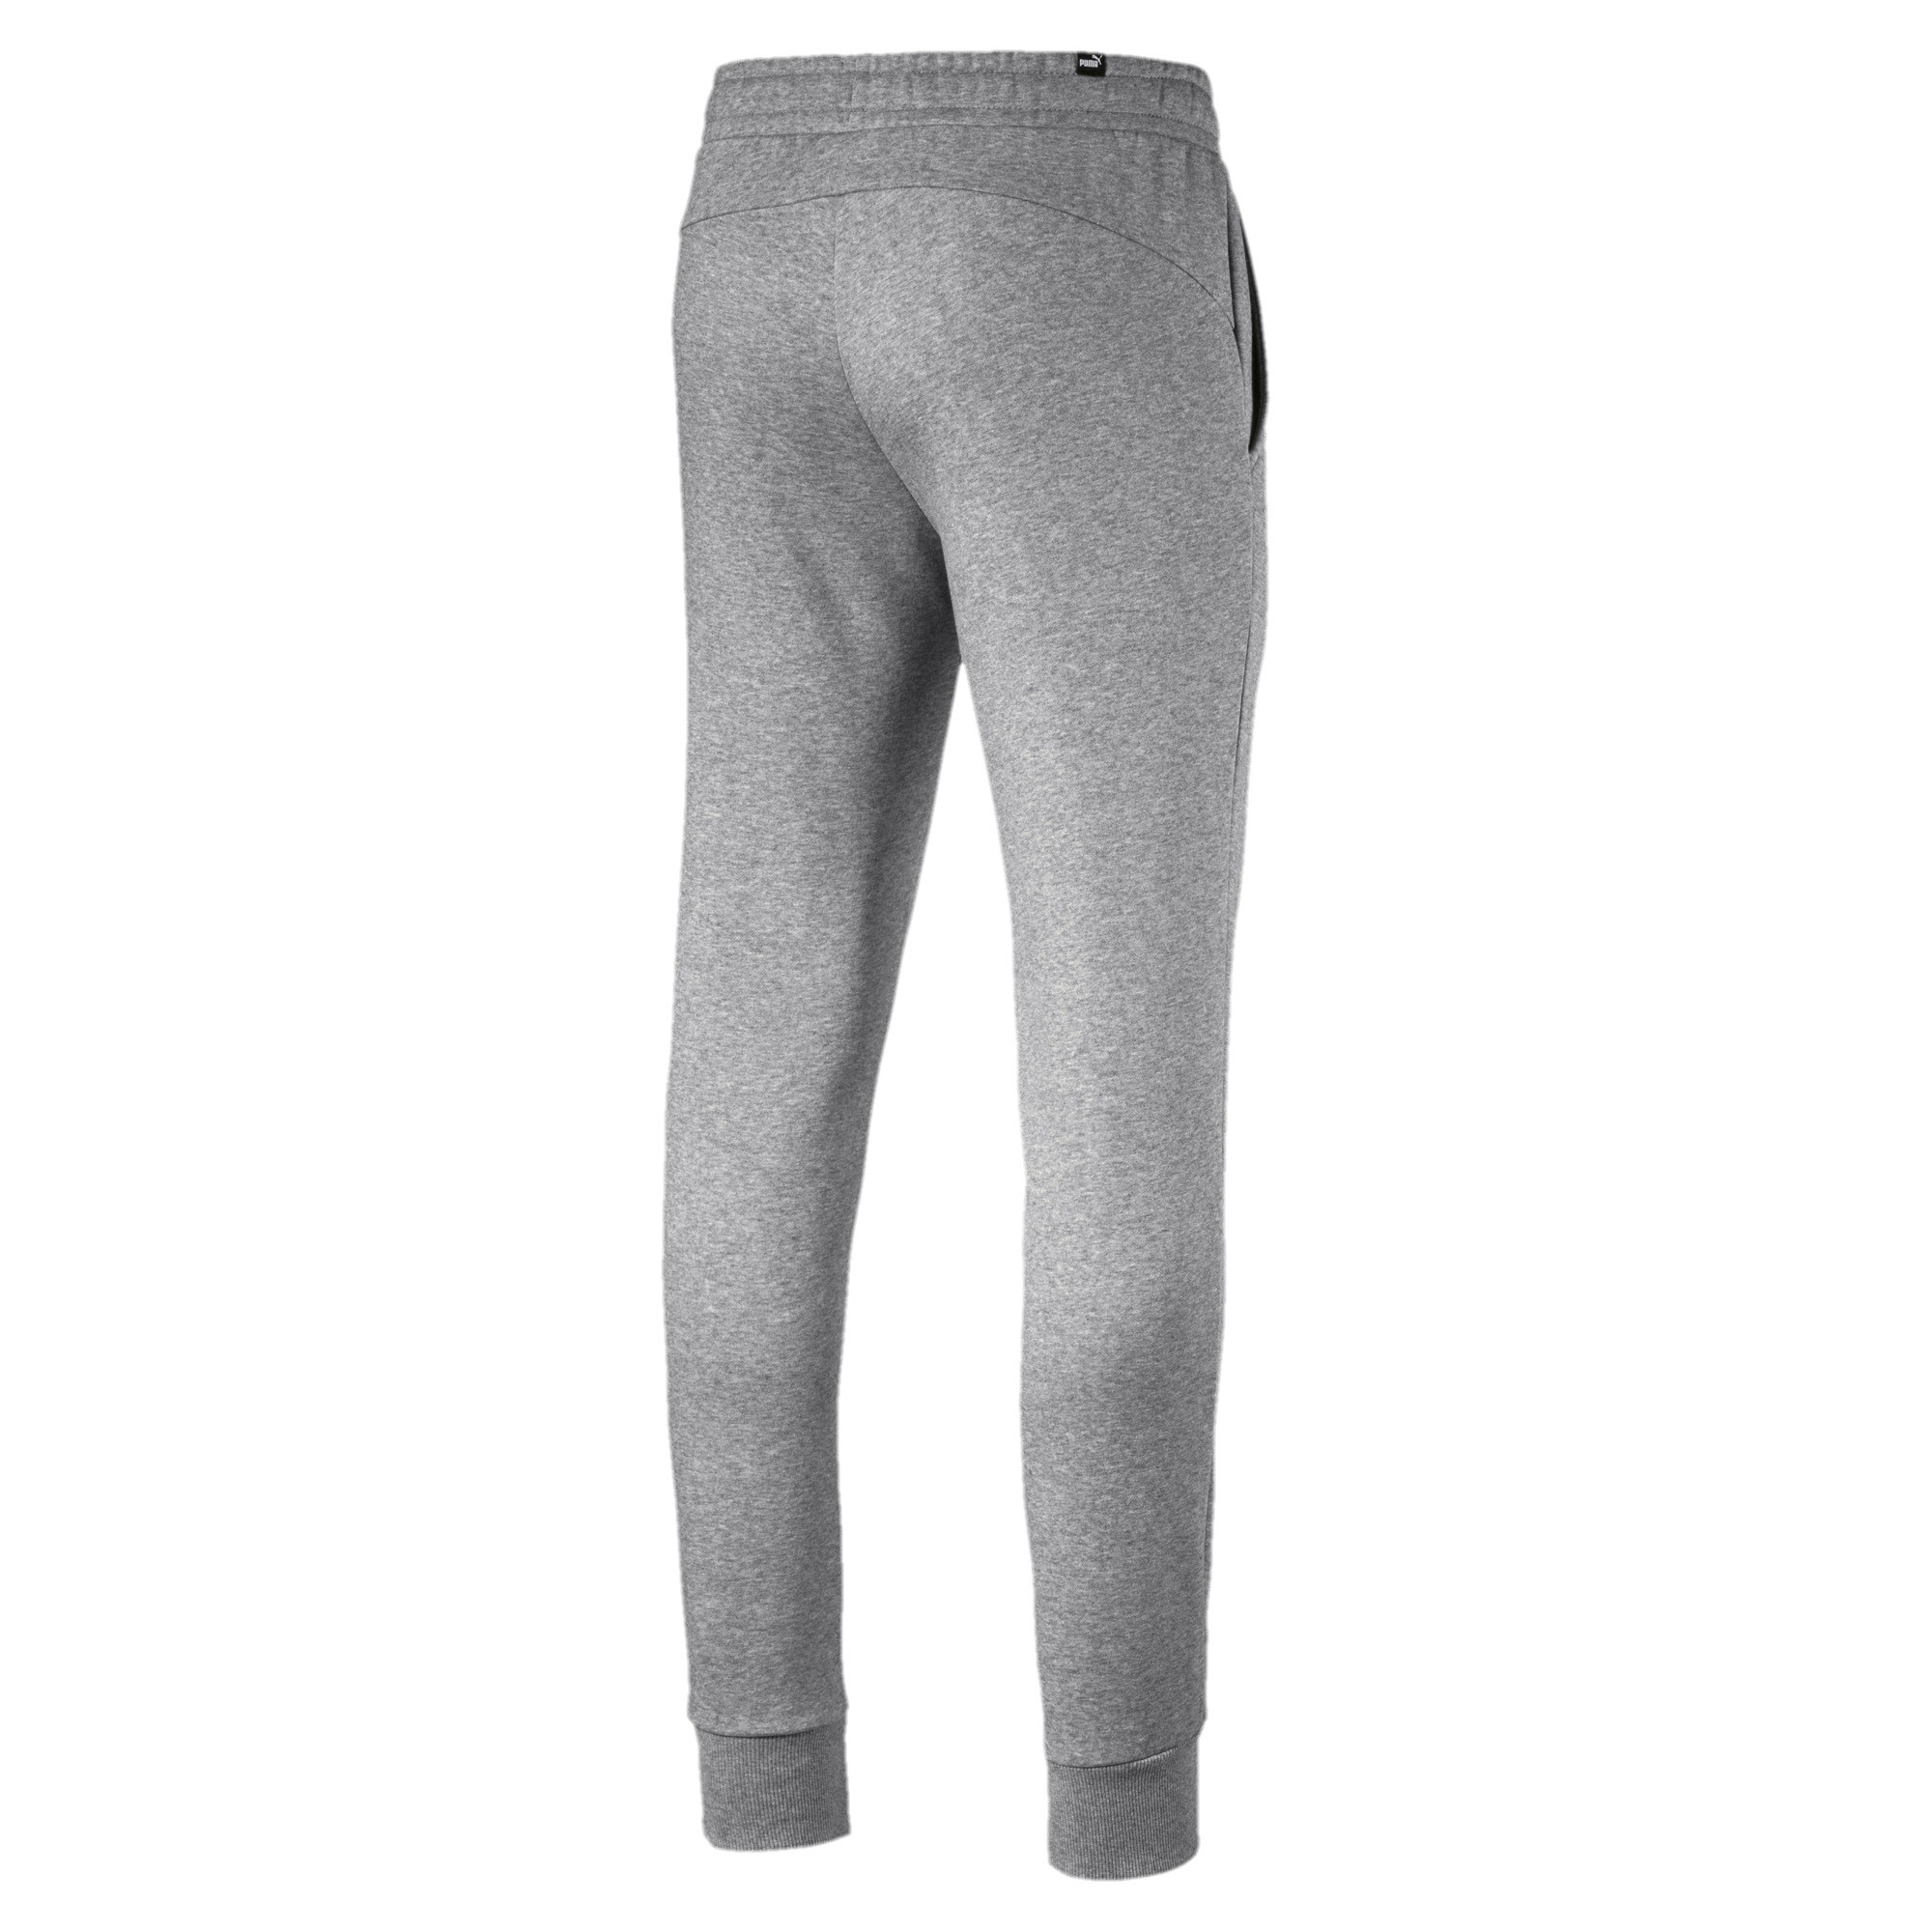 PUMA-Essentials-Men-039-s-Fleece-Knit-Pants-Men-Knitted-Pants-Basics thumbnail 9